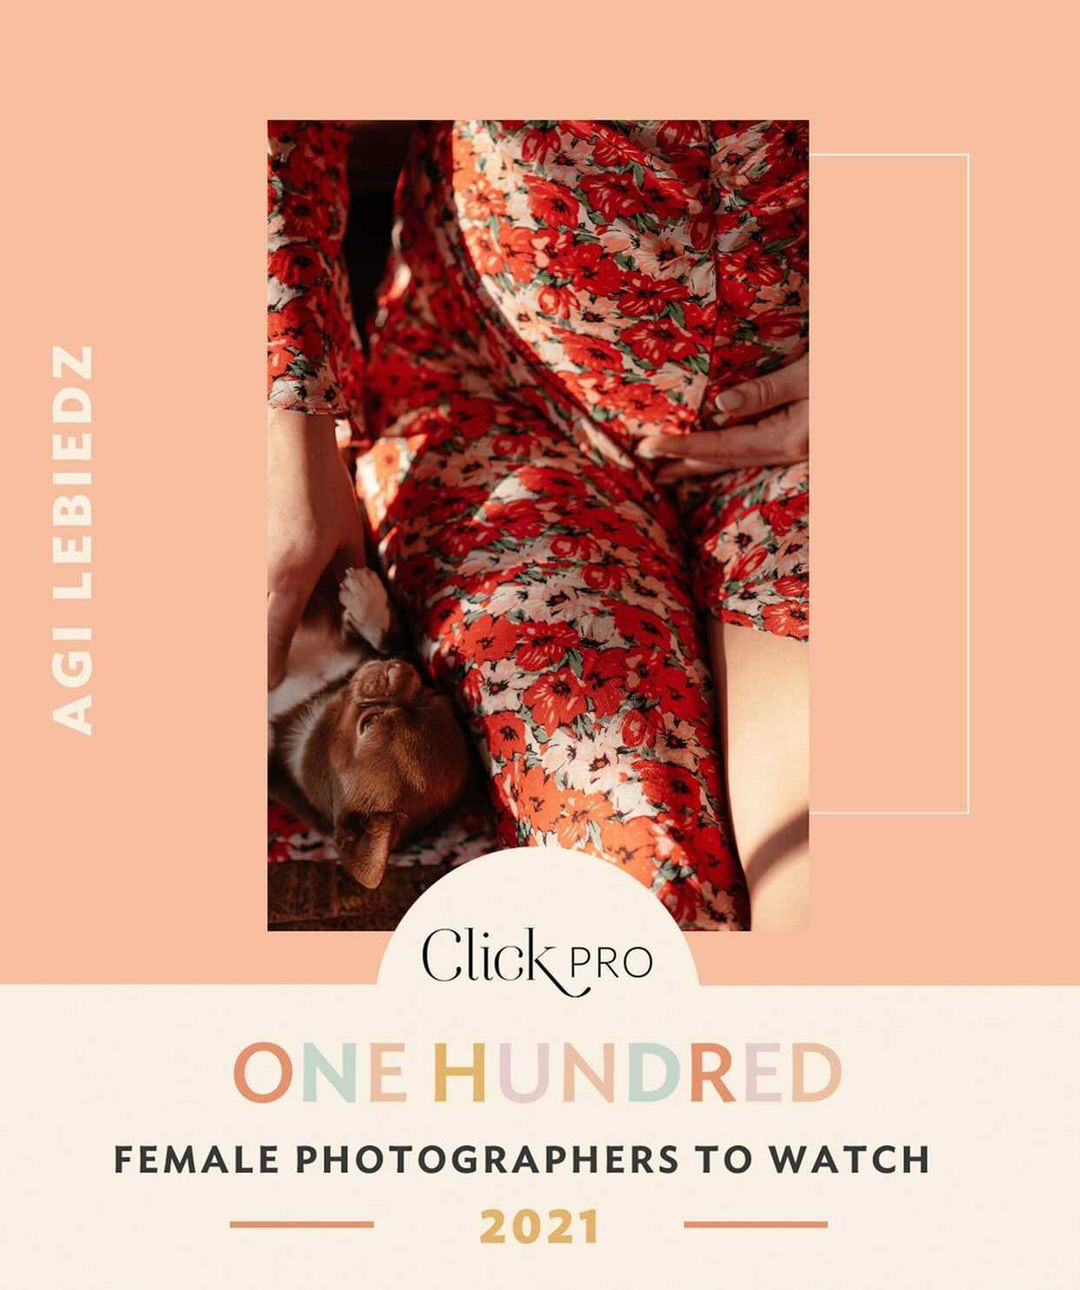 100 female photographers to watch in 2021